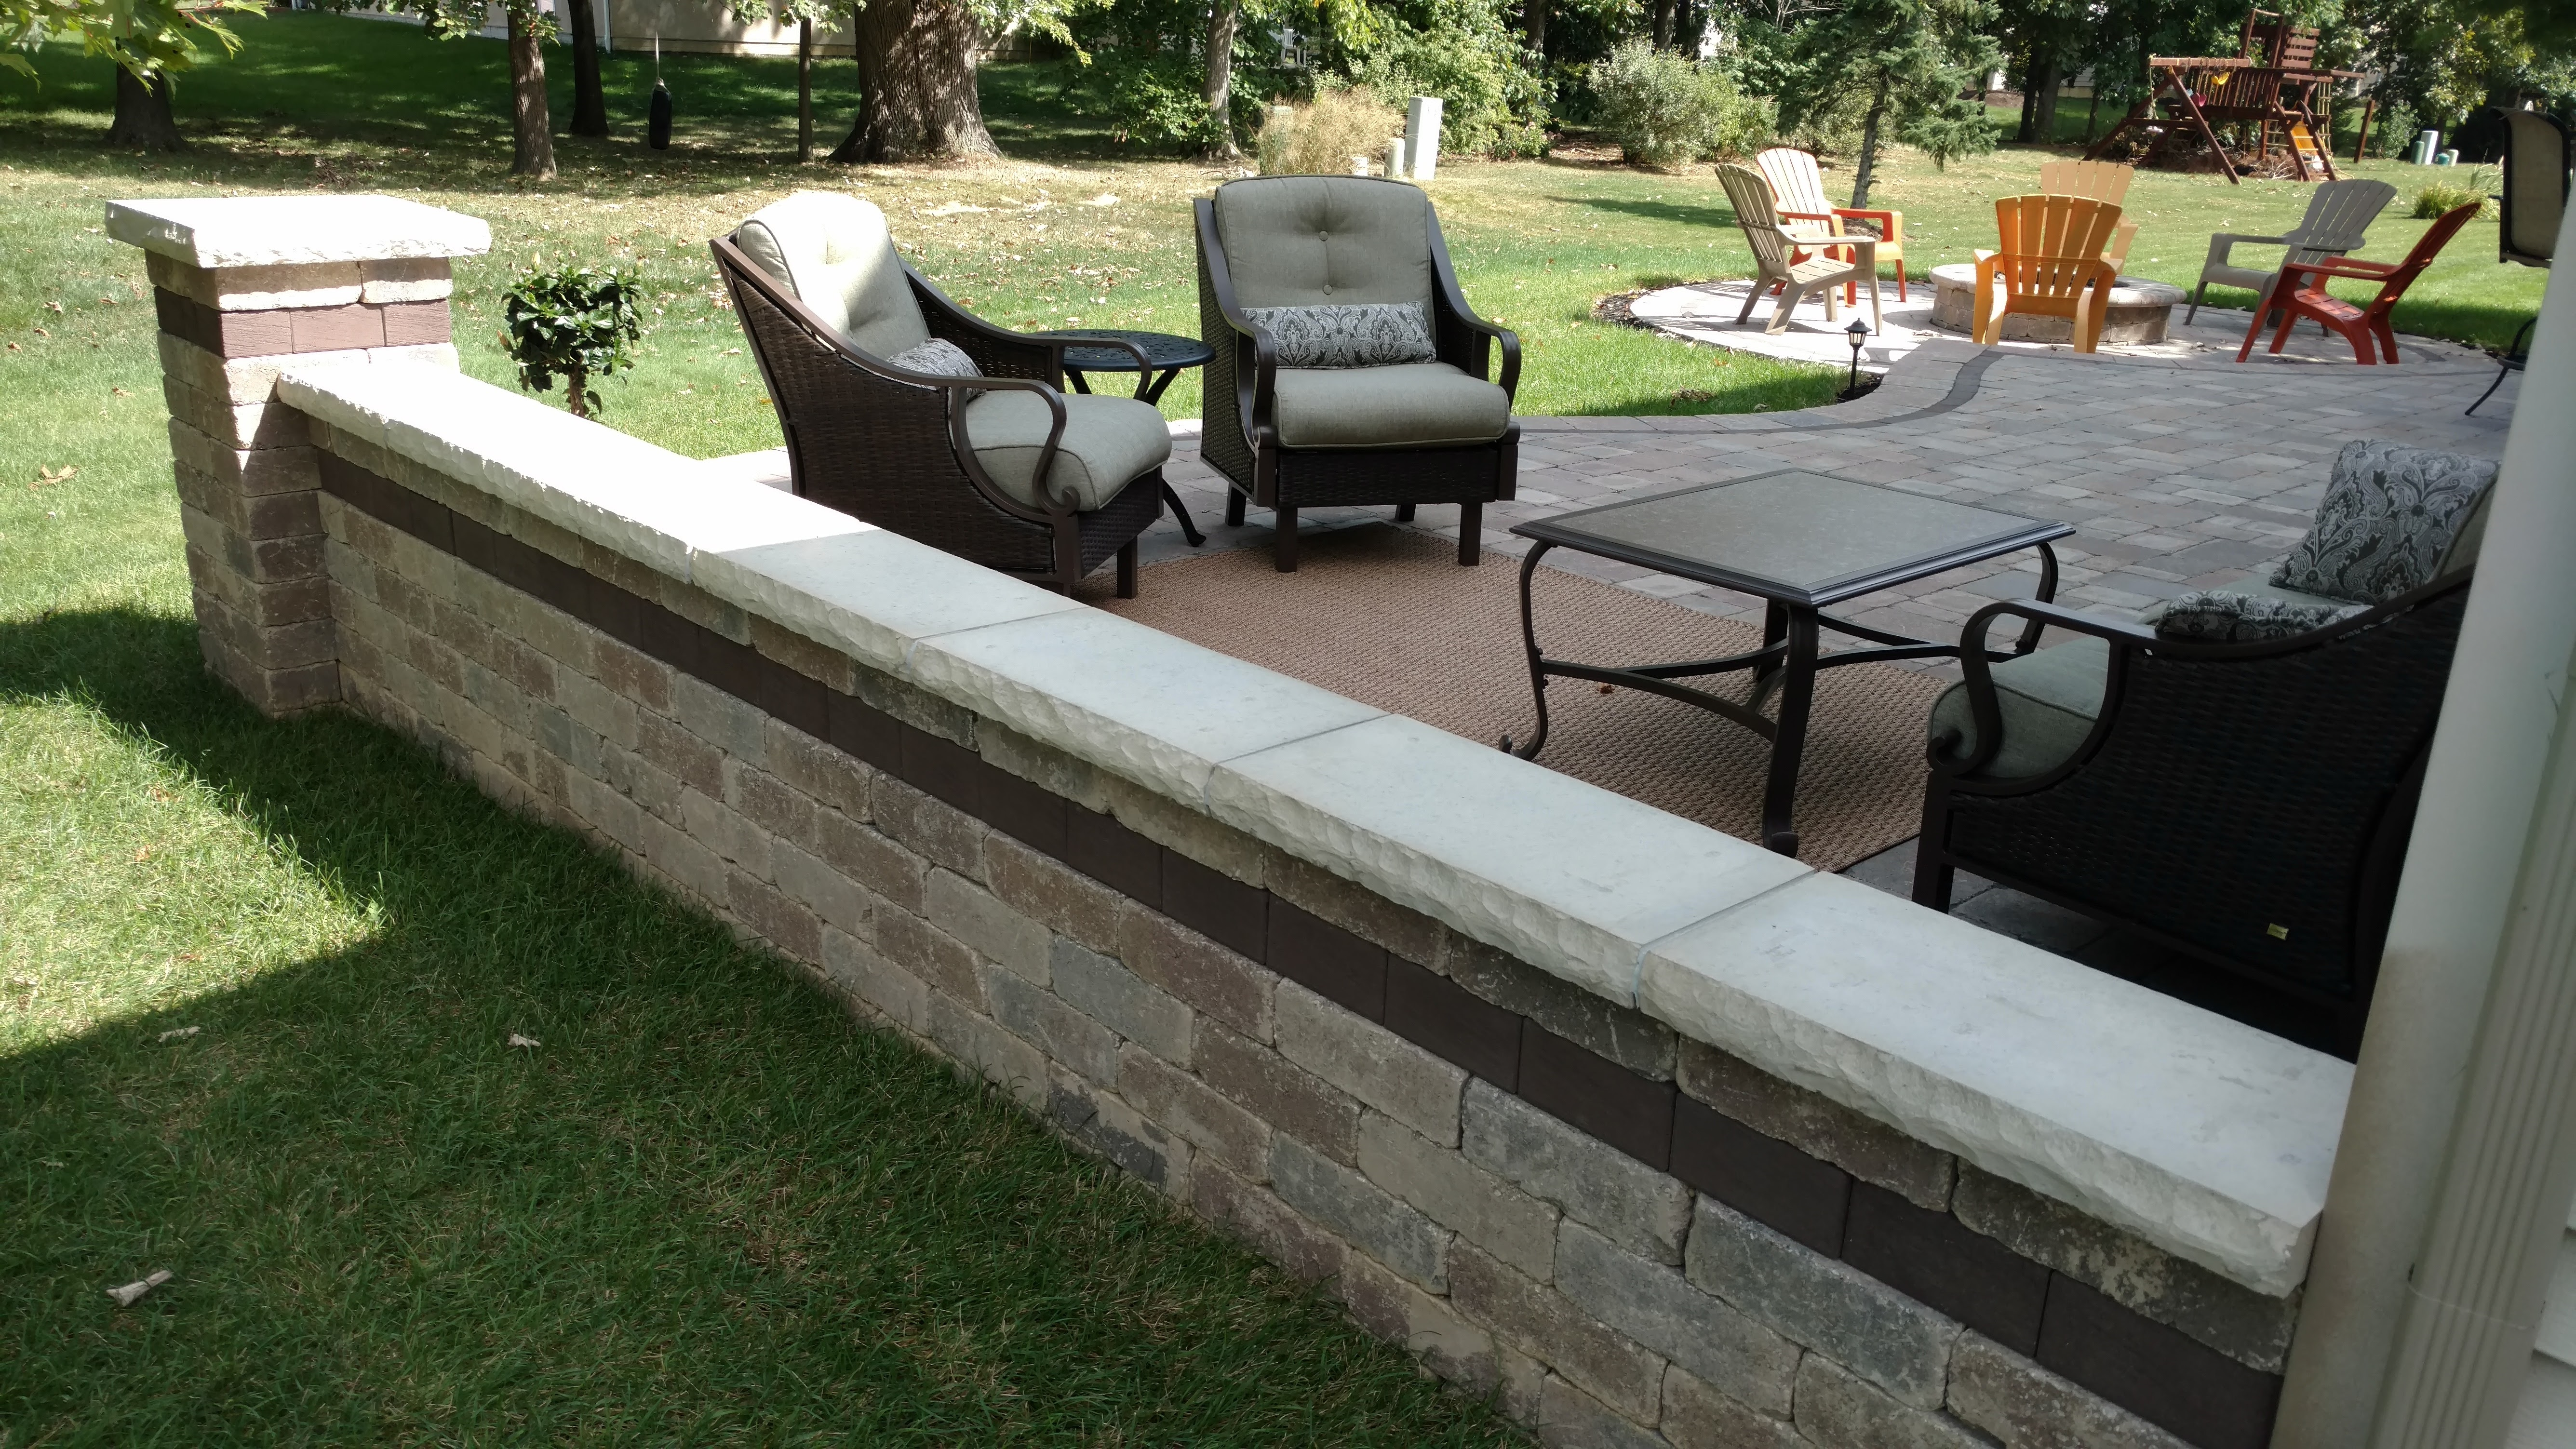 If You Are Ready To Discover What An Amazing Custom Patio Design Archadeck  Of Columbus Can Craft For Your Outdoor Living Space, Contact Us Today To  Learn ...